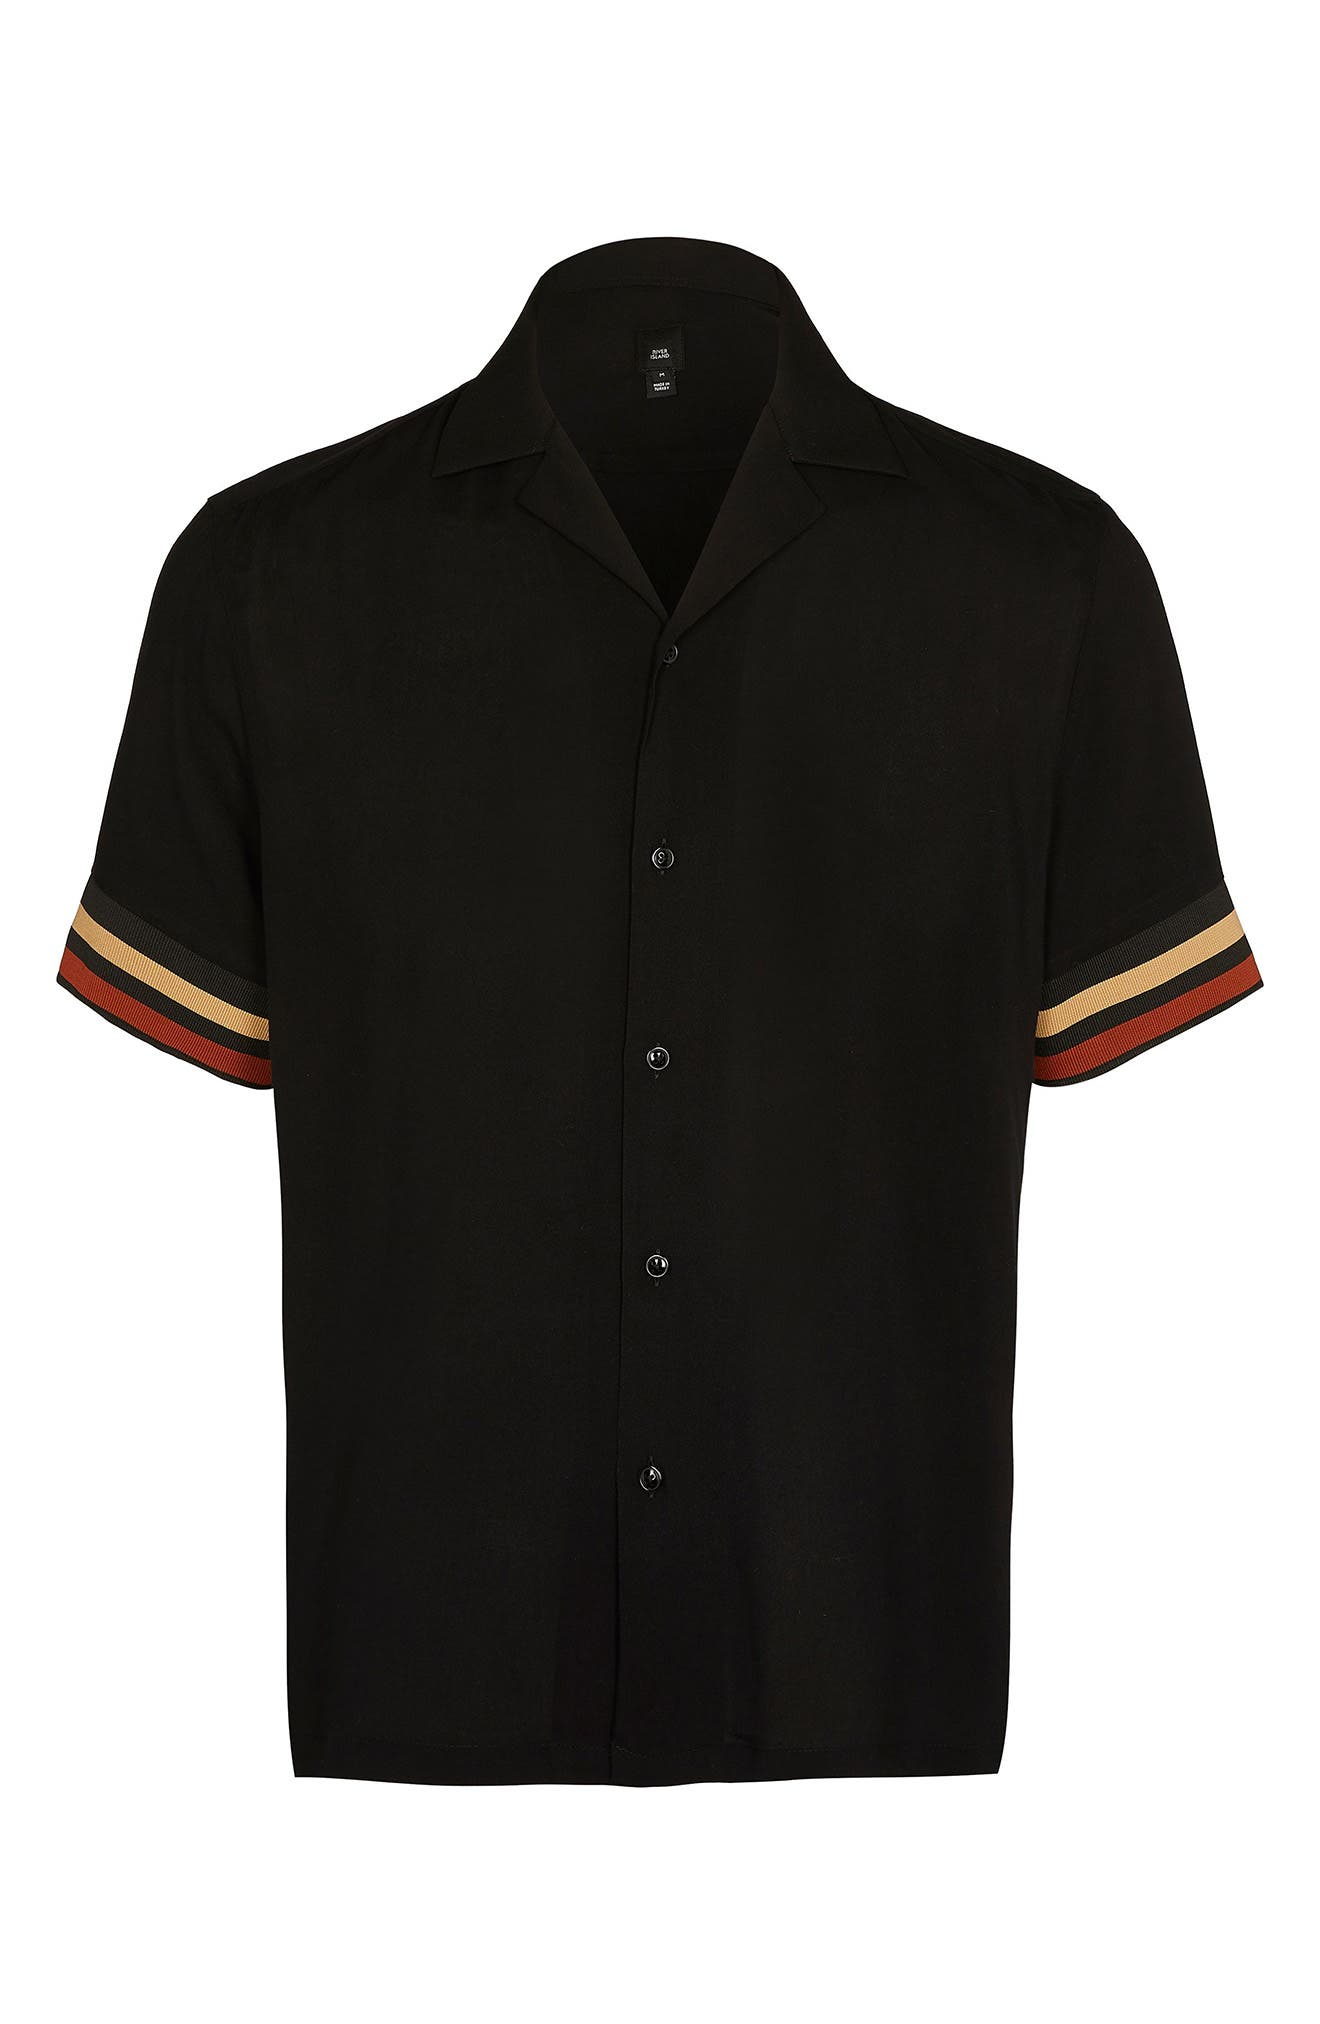 1950s Men's Clothing Mens River Island Tipped Stripe Revere Button-Up Shirt Size Small - Black $50.00 AT vintagedancer.com